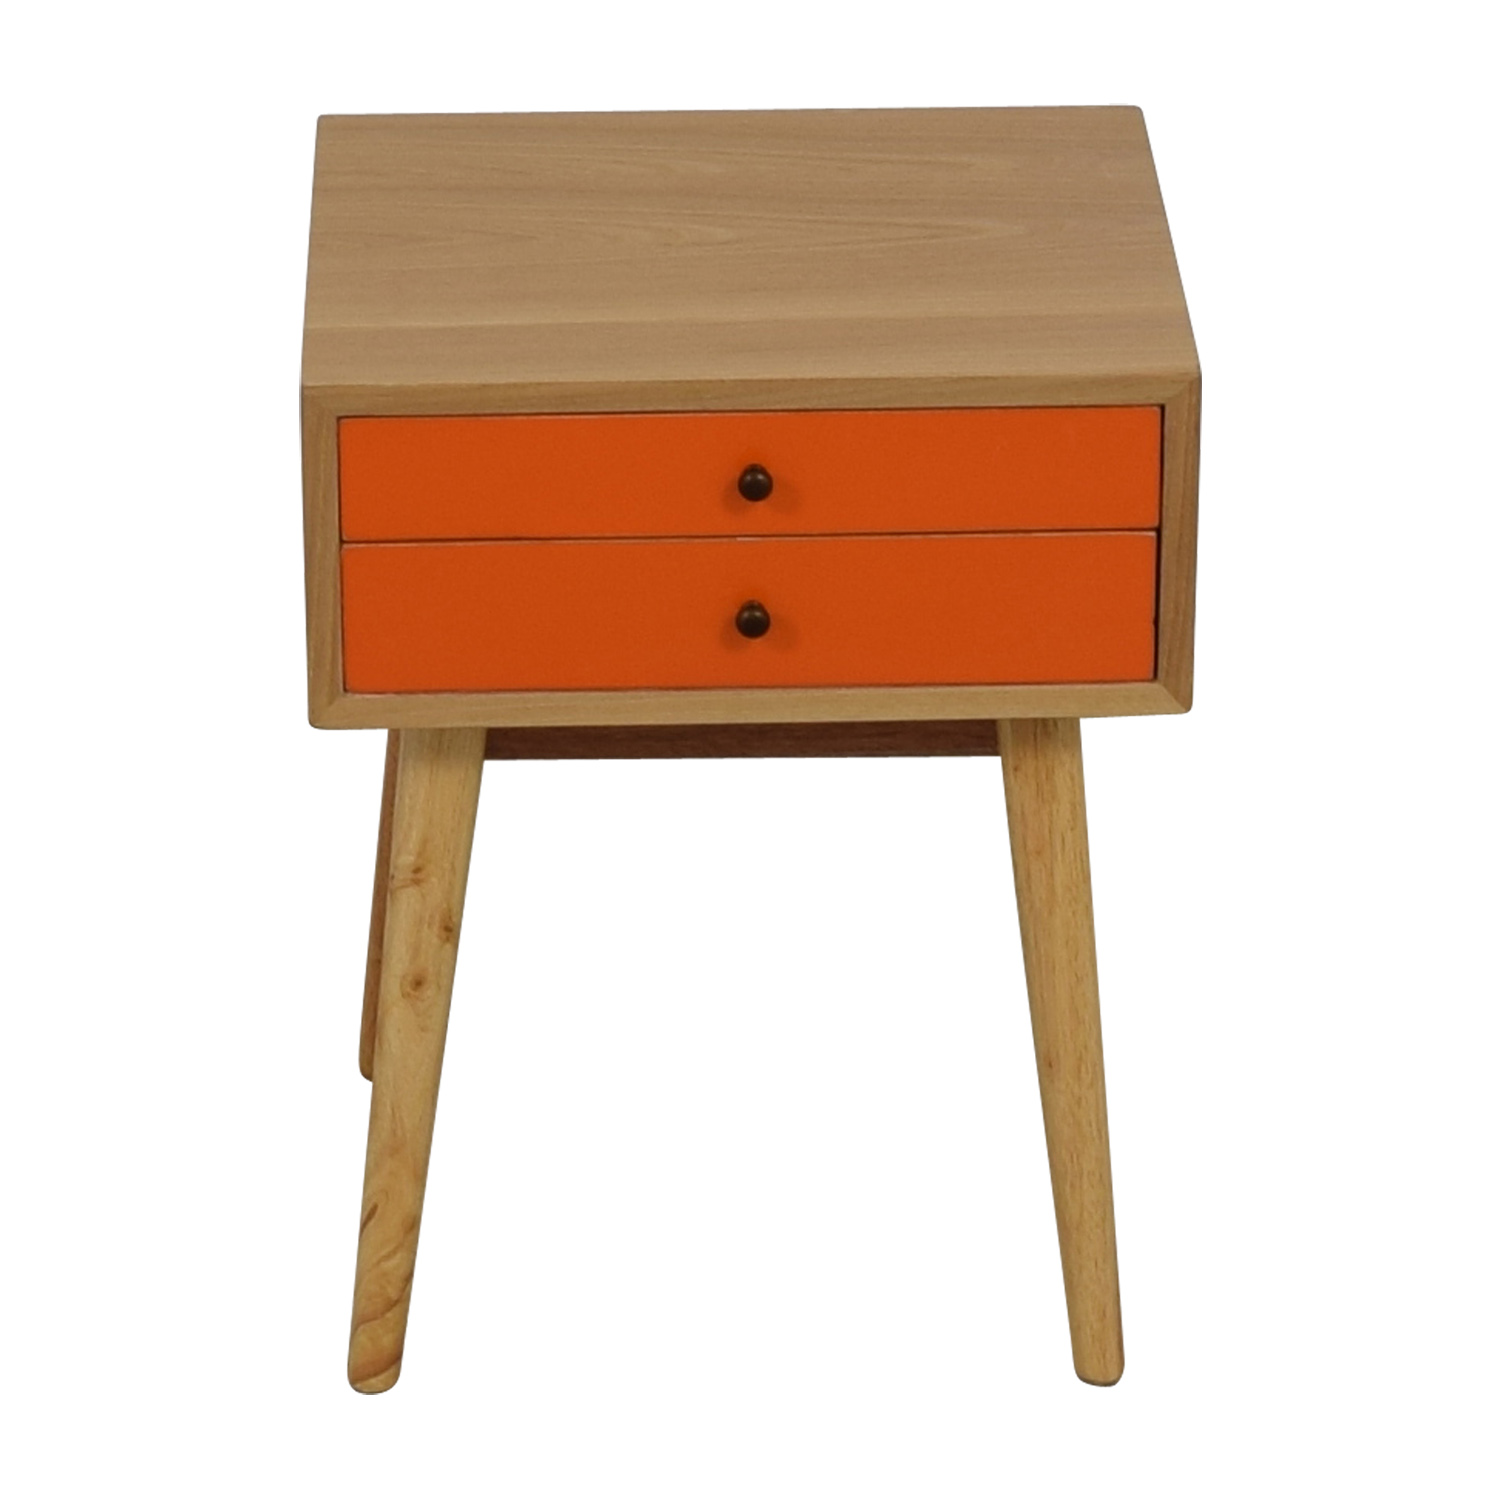 shop Orange and Wood Art Deco Single Drawer Nightstand